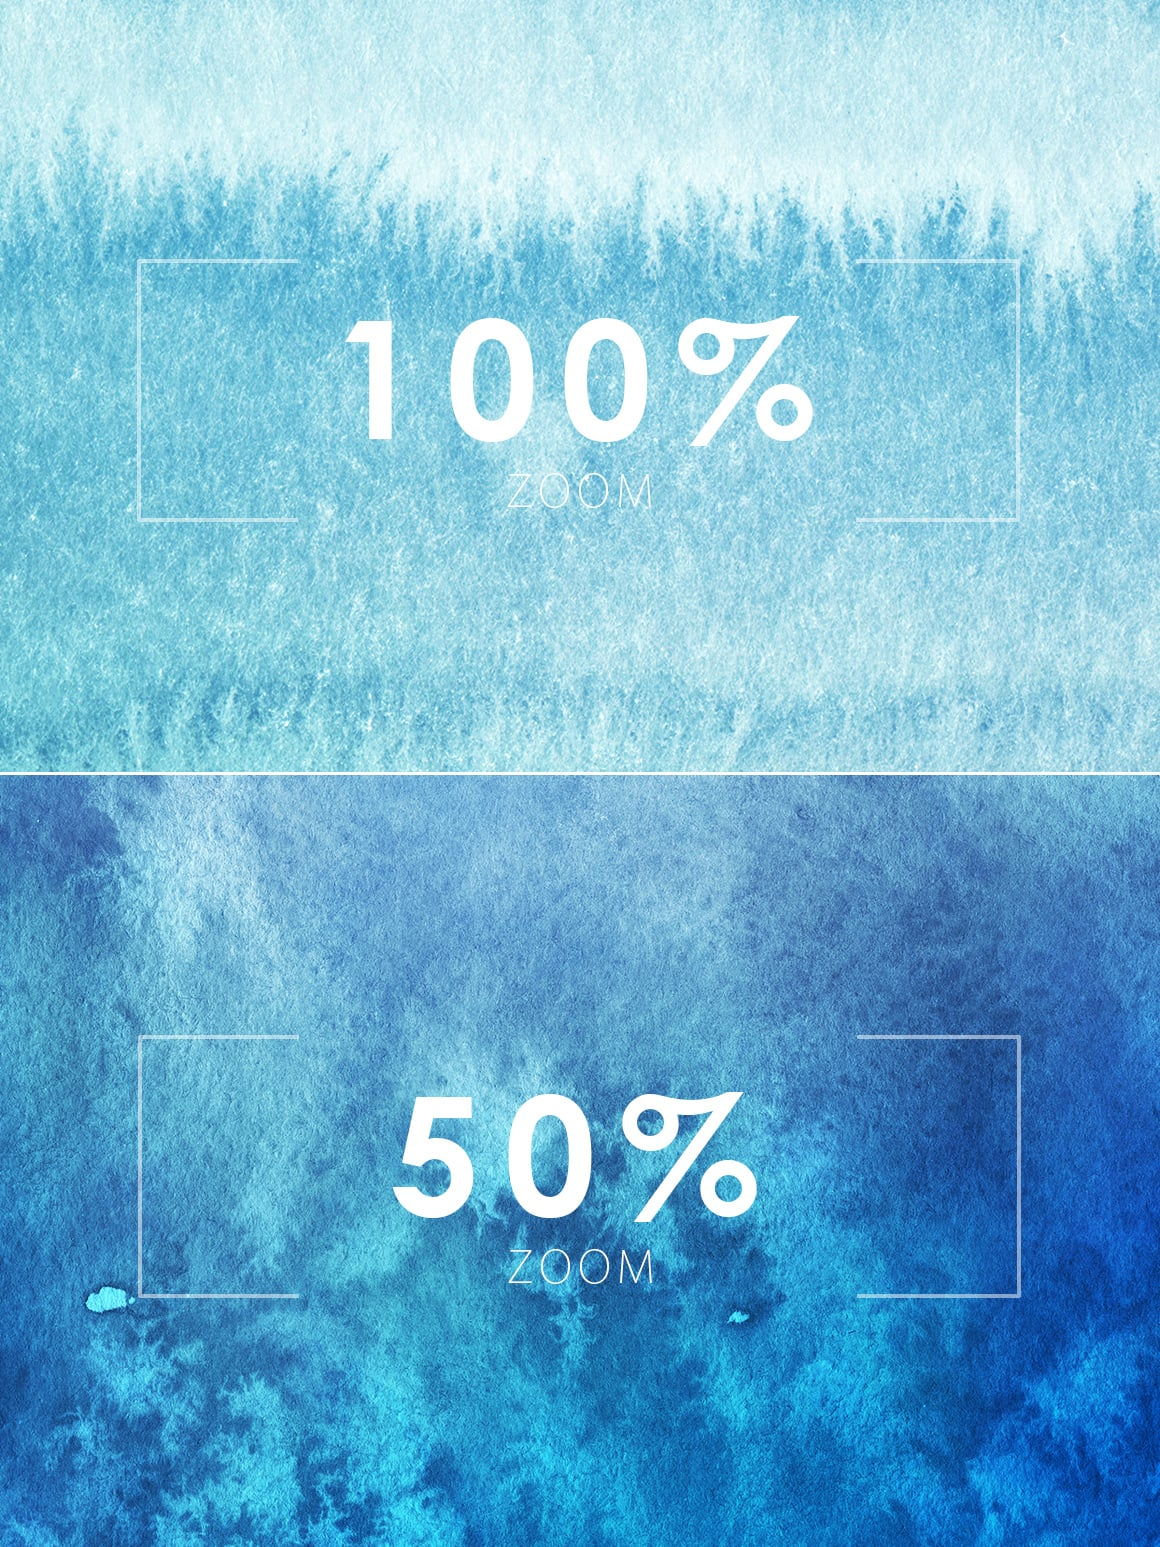 540+ Watercolor Backgrounds Bundle - 544 Items. Only $18! - winter watercolor backgrounds prev3 o